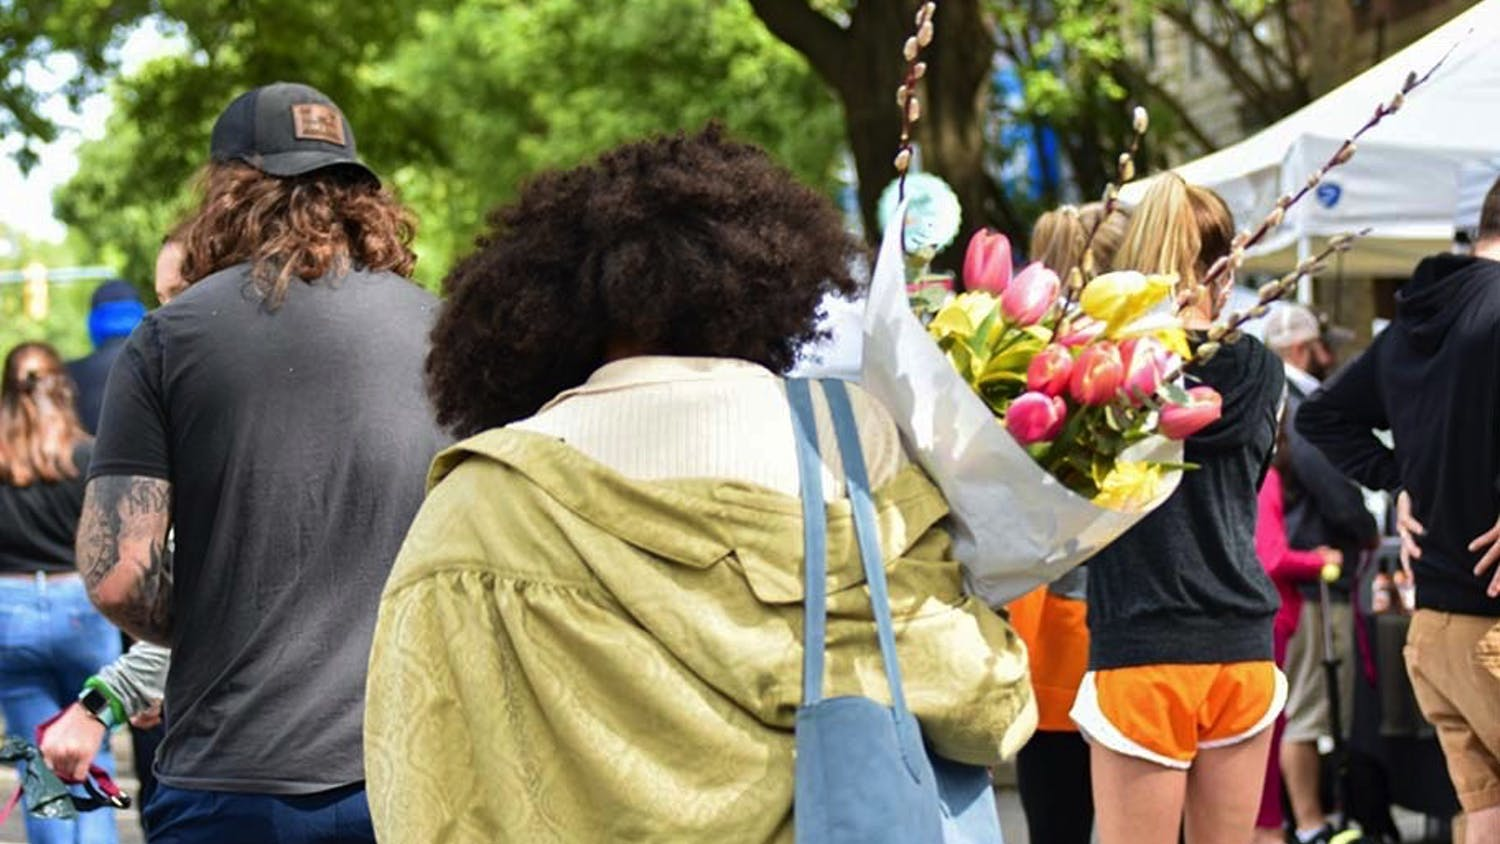 A woman walking with a bouquet of tulips down Main Street through Soda City Market. Soda City is a marketplace where around 150 vendors and artists create a diverse and lively experience for the thousands who attend.